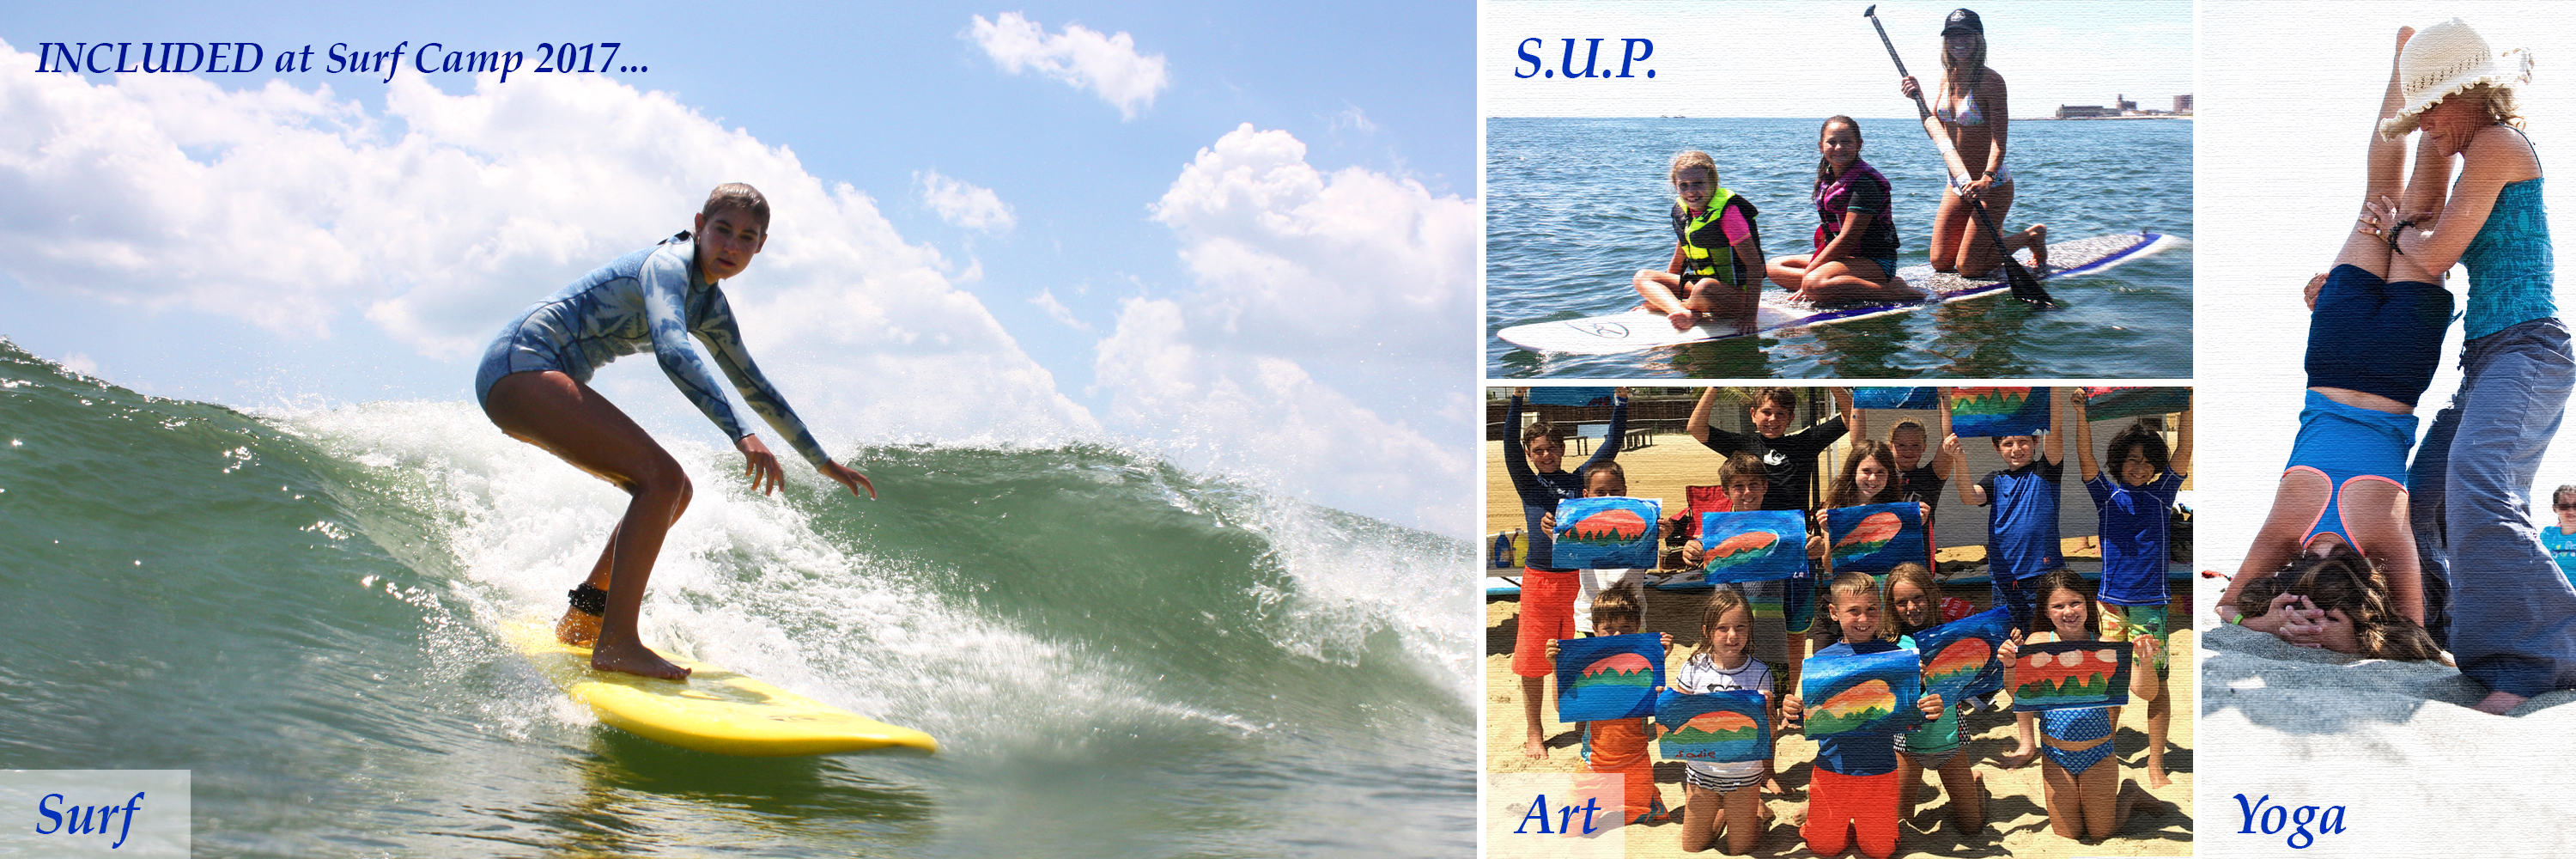 Surf camp NJ, Surfing and Art, Stand Up Paddle, Yoga